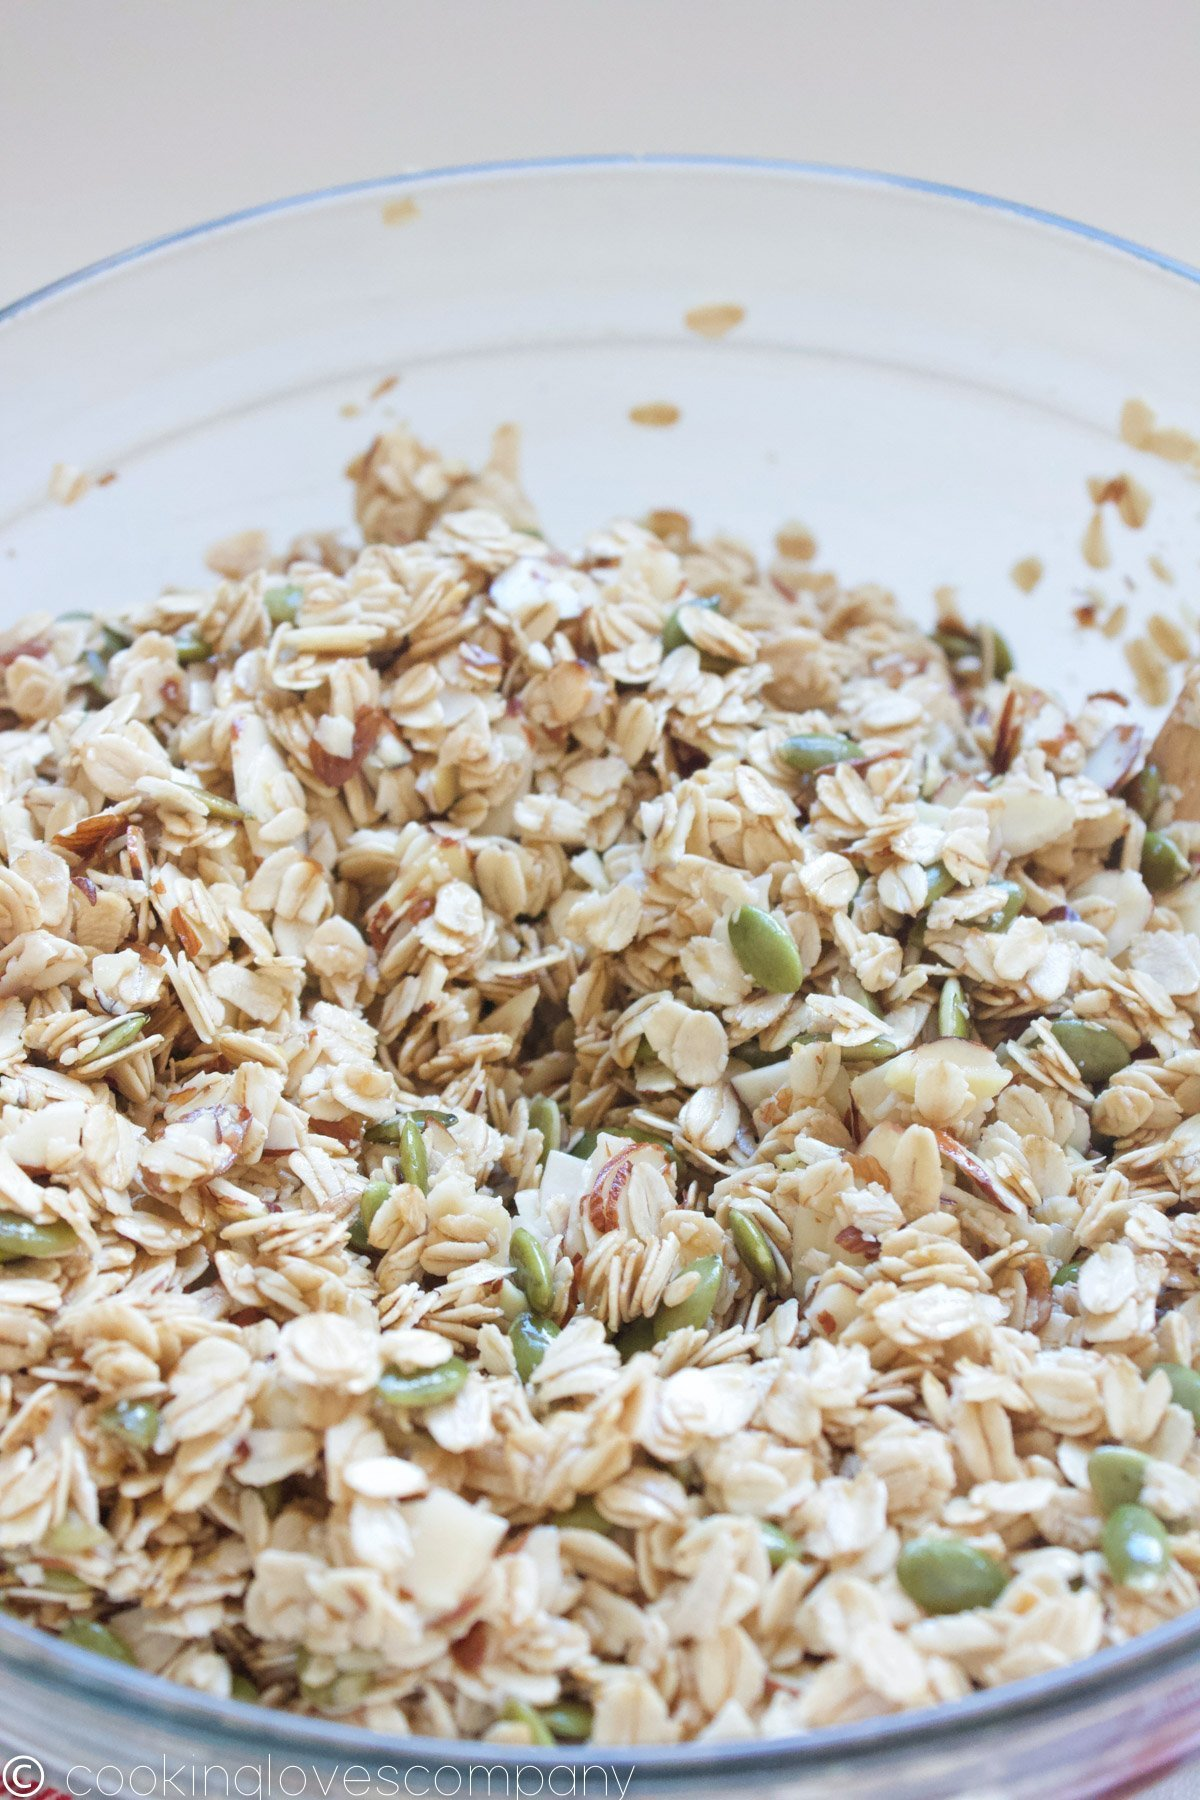 Mixed coconut, maple granola in a glass bowl